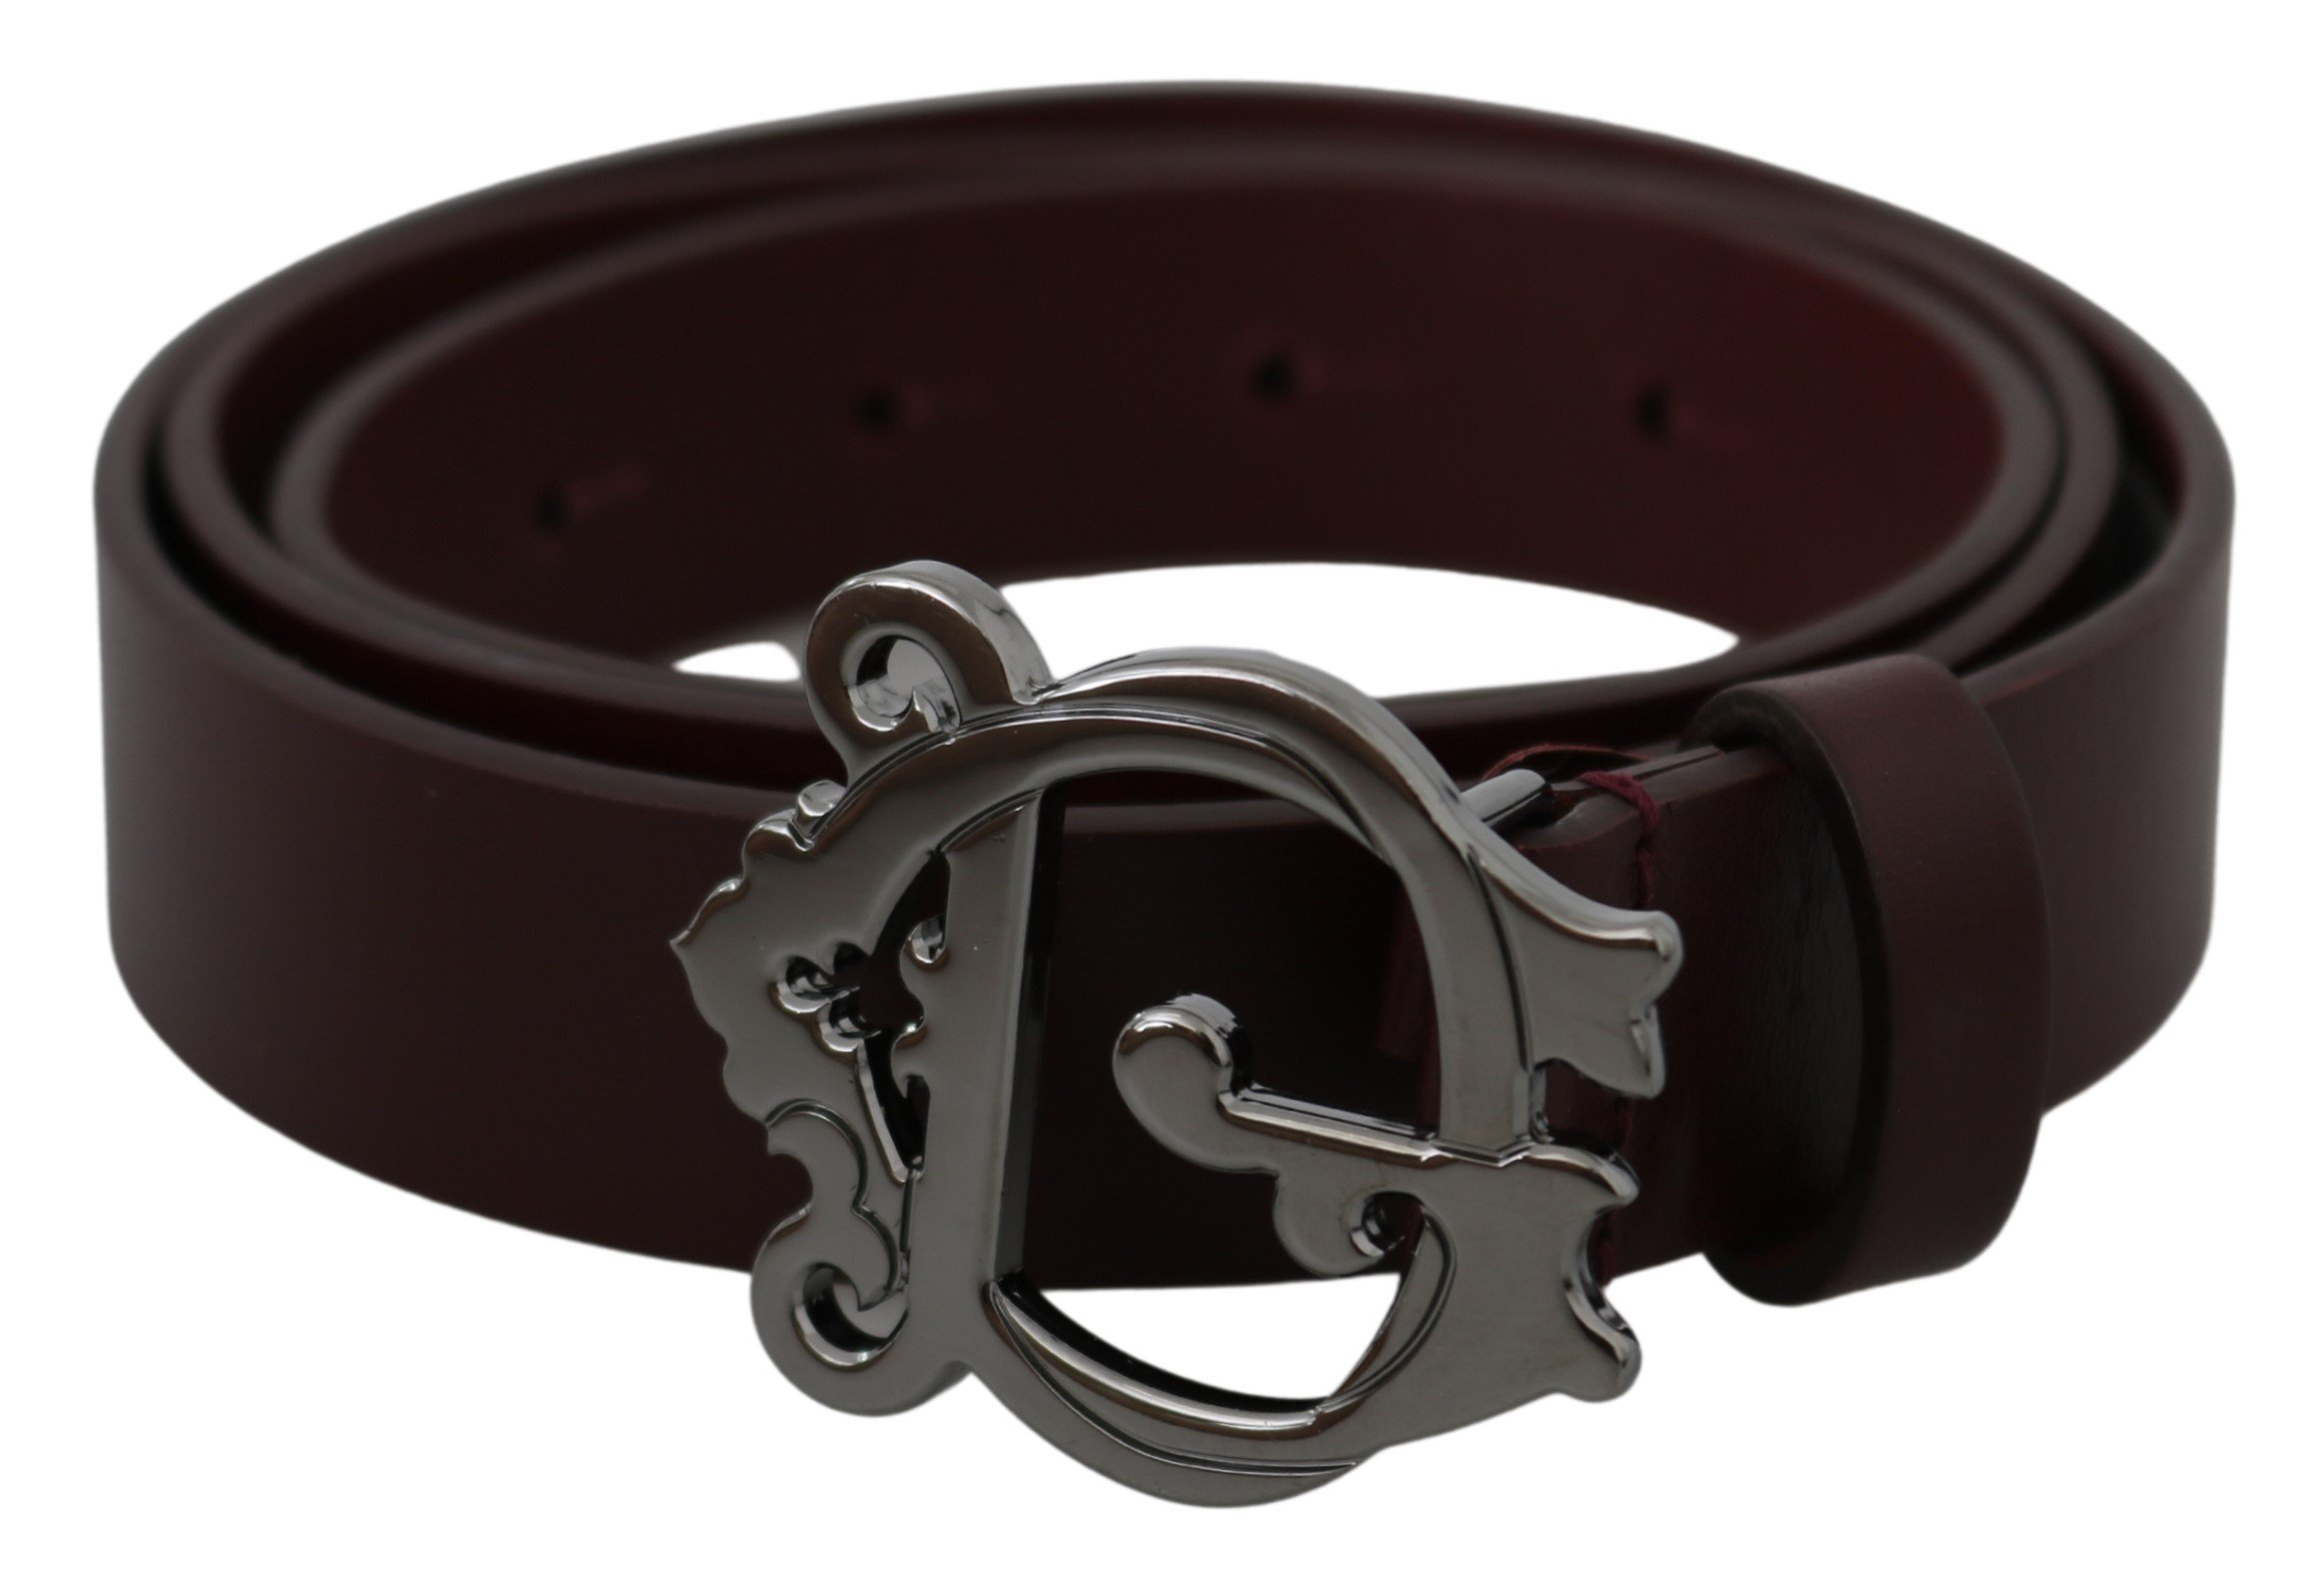 Brown Leather Silver Baroque DG Buckle Belt - 90 cm / 36 Inches